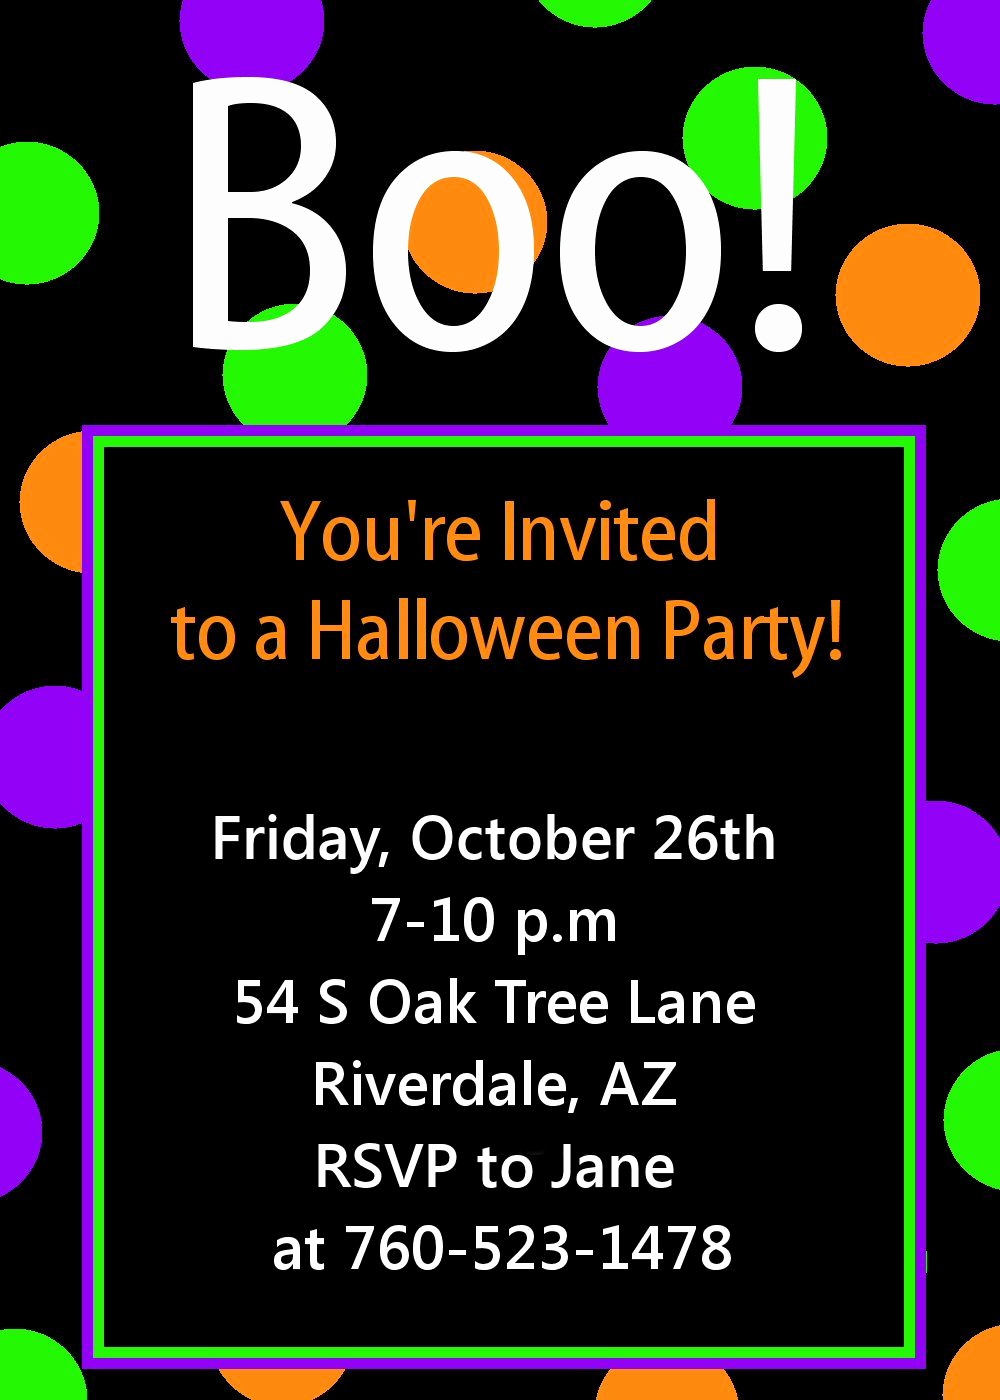 Halloween Party Invite Template Inspirational Halloween Party Invitation Printable